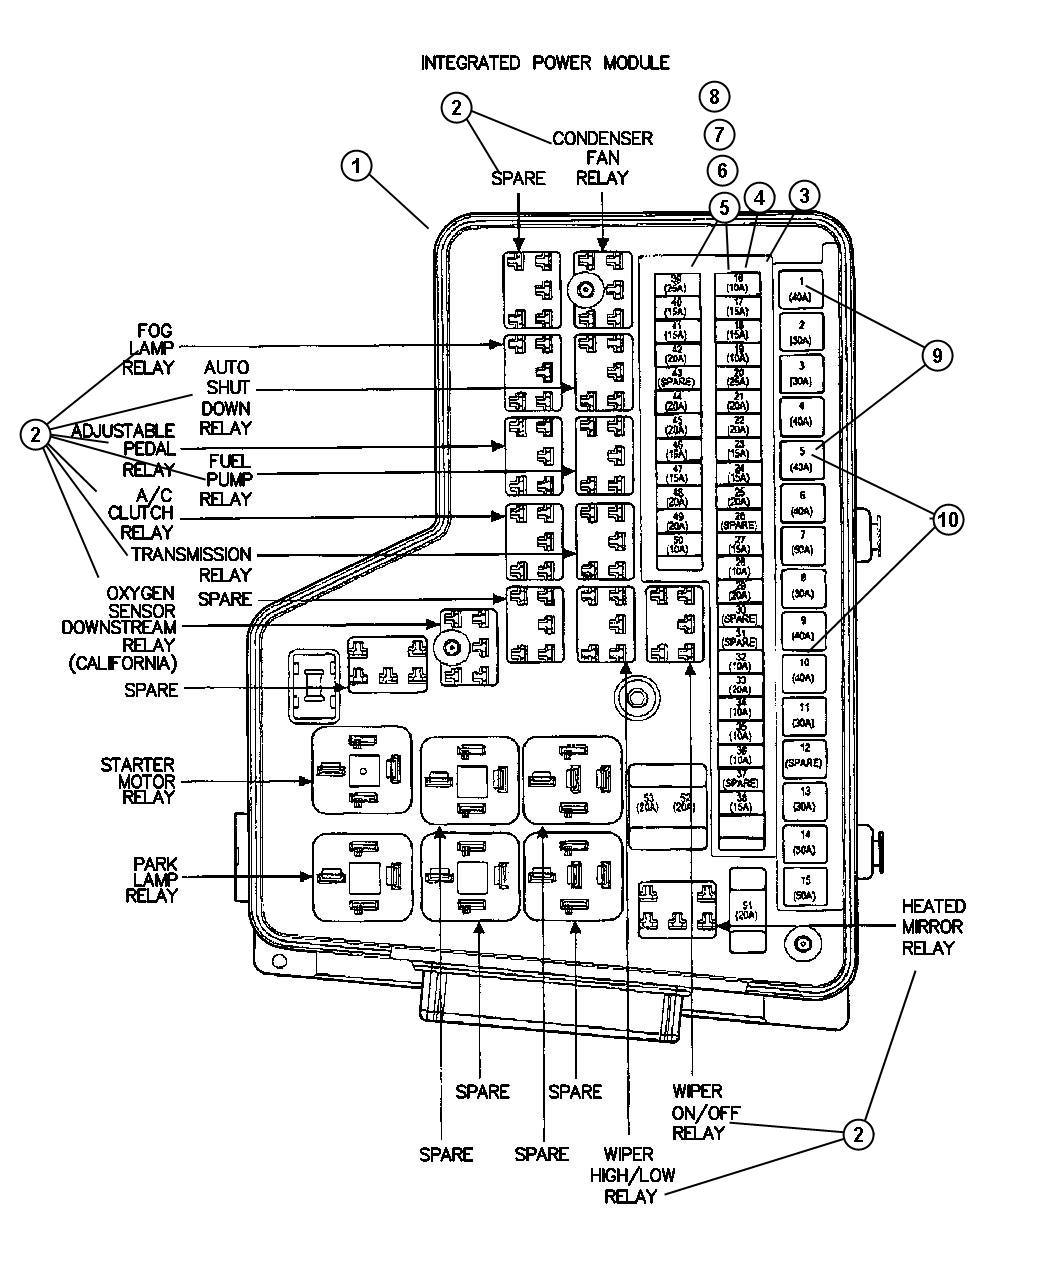 T21941584 Location camshaft positioning sensor on wiring diagram for 2007 dodge ram stereo